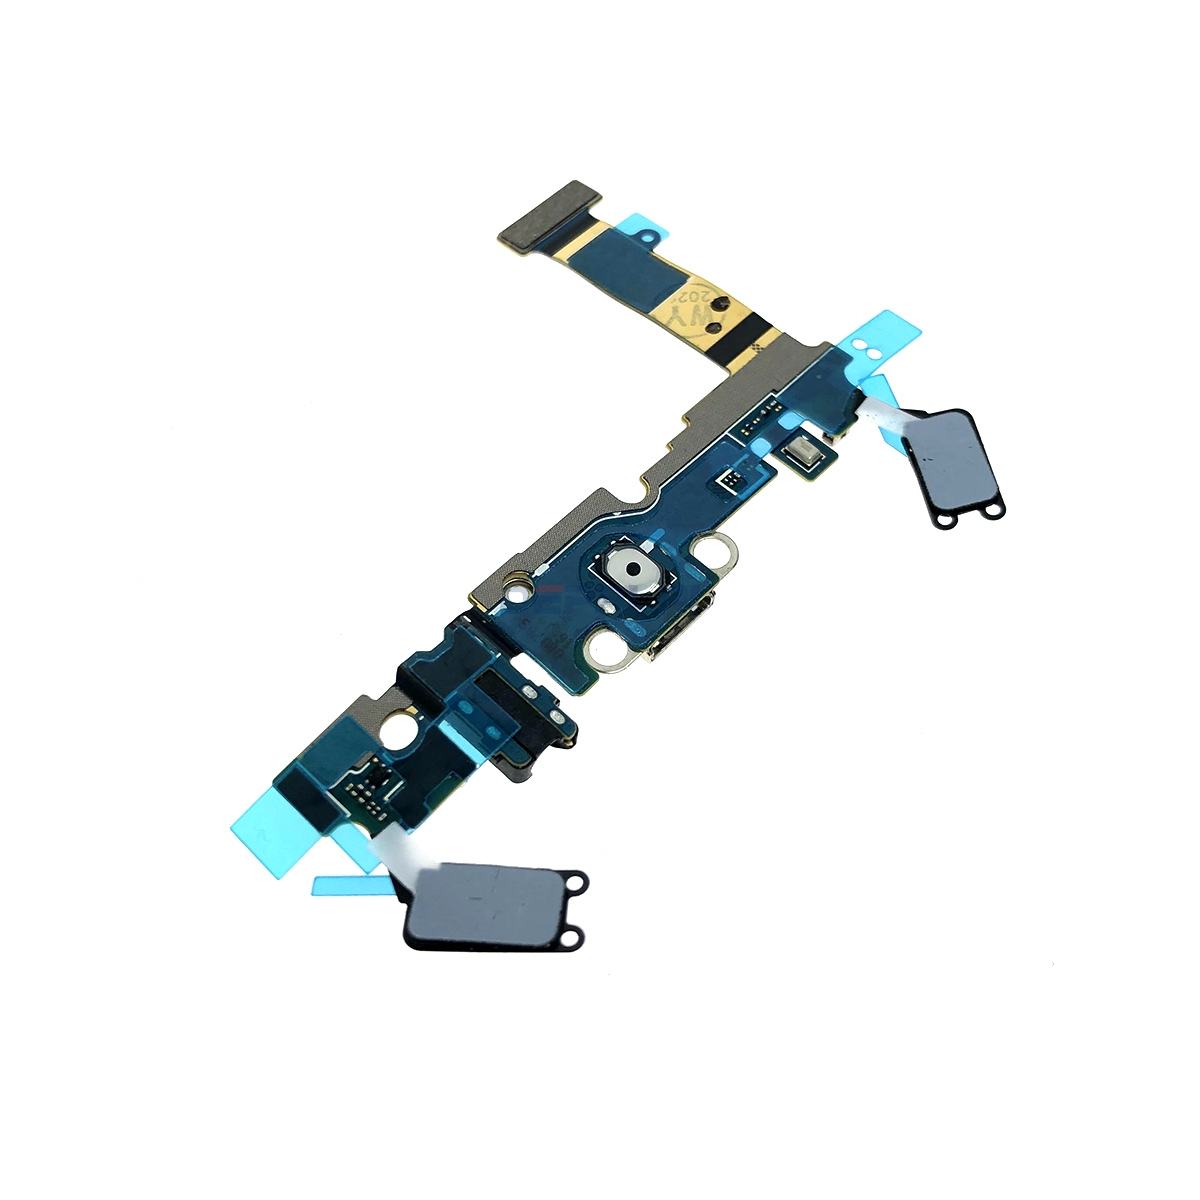 USB Charging Flex Cable With Microphone For Samsung Galaxy A5 2016 A510F Charger Port Ribbon